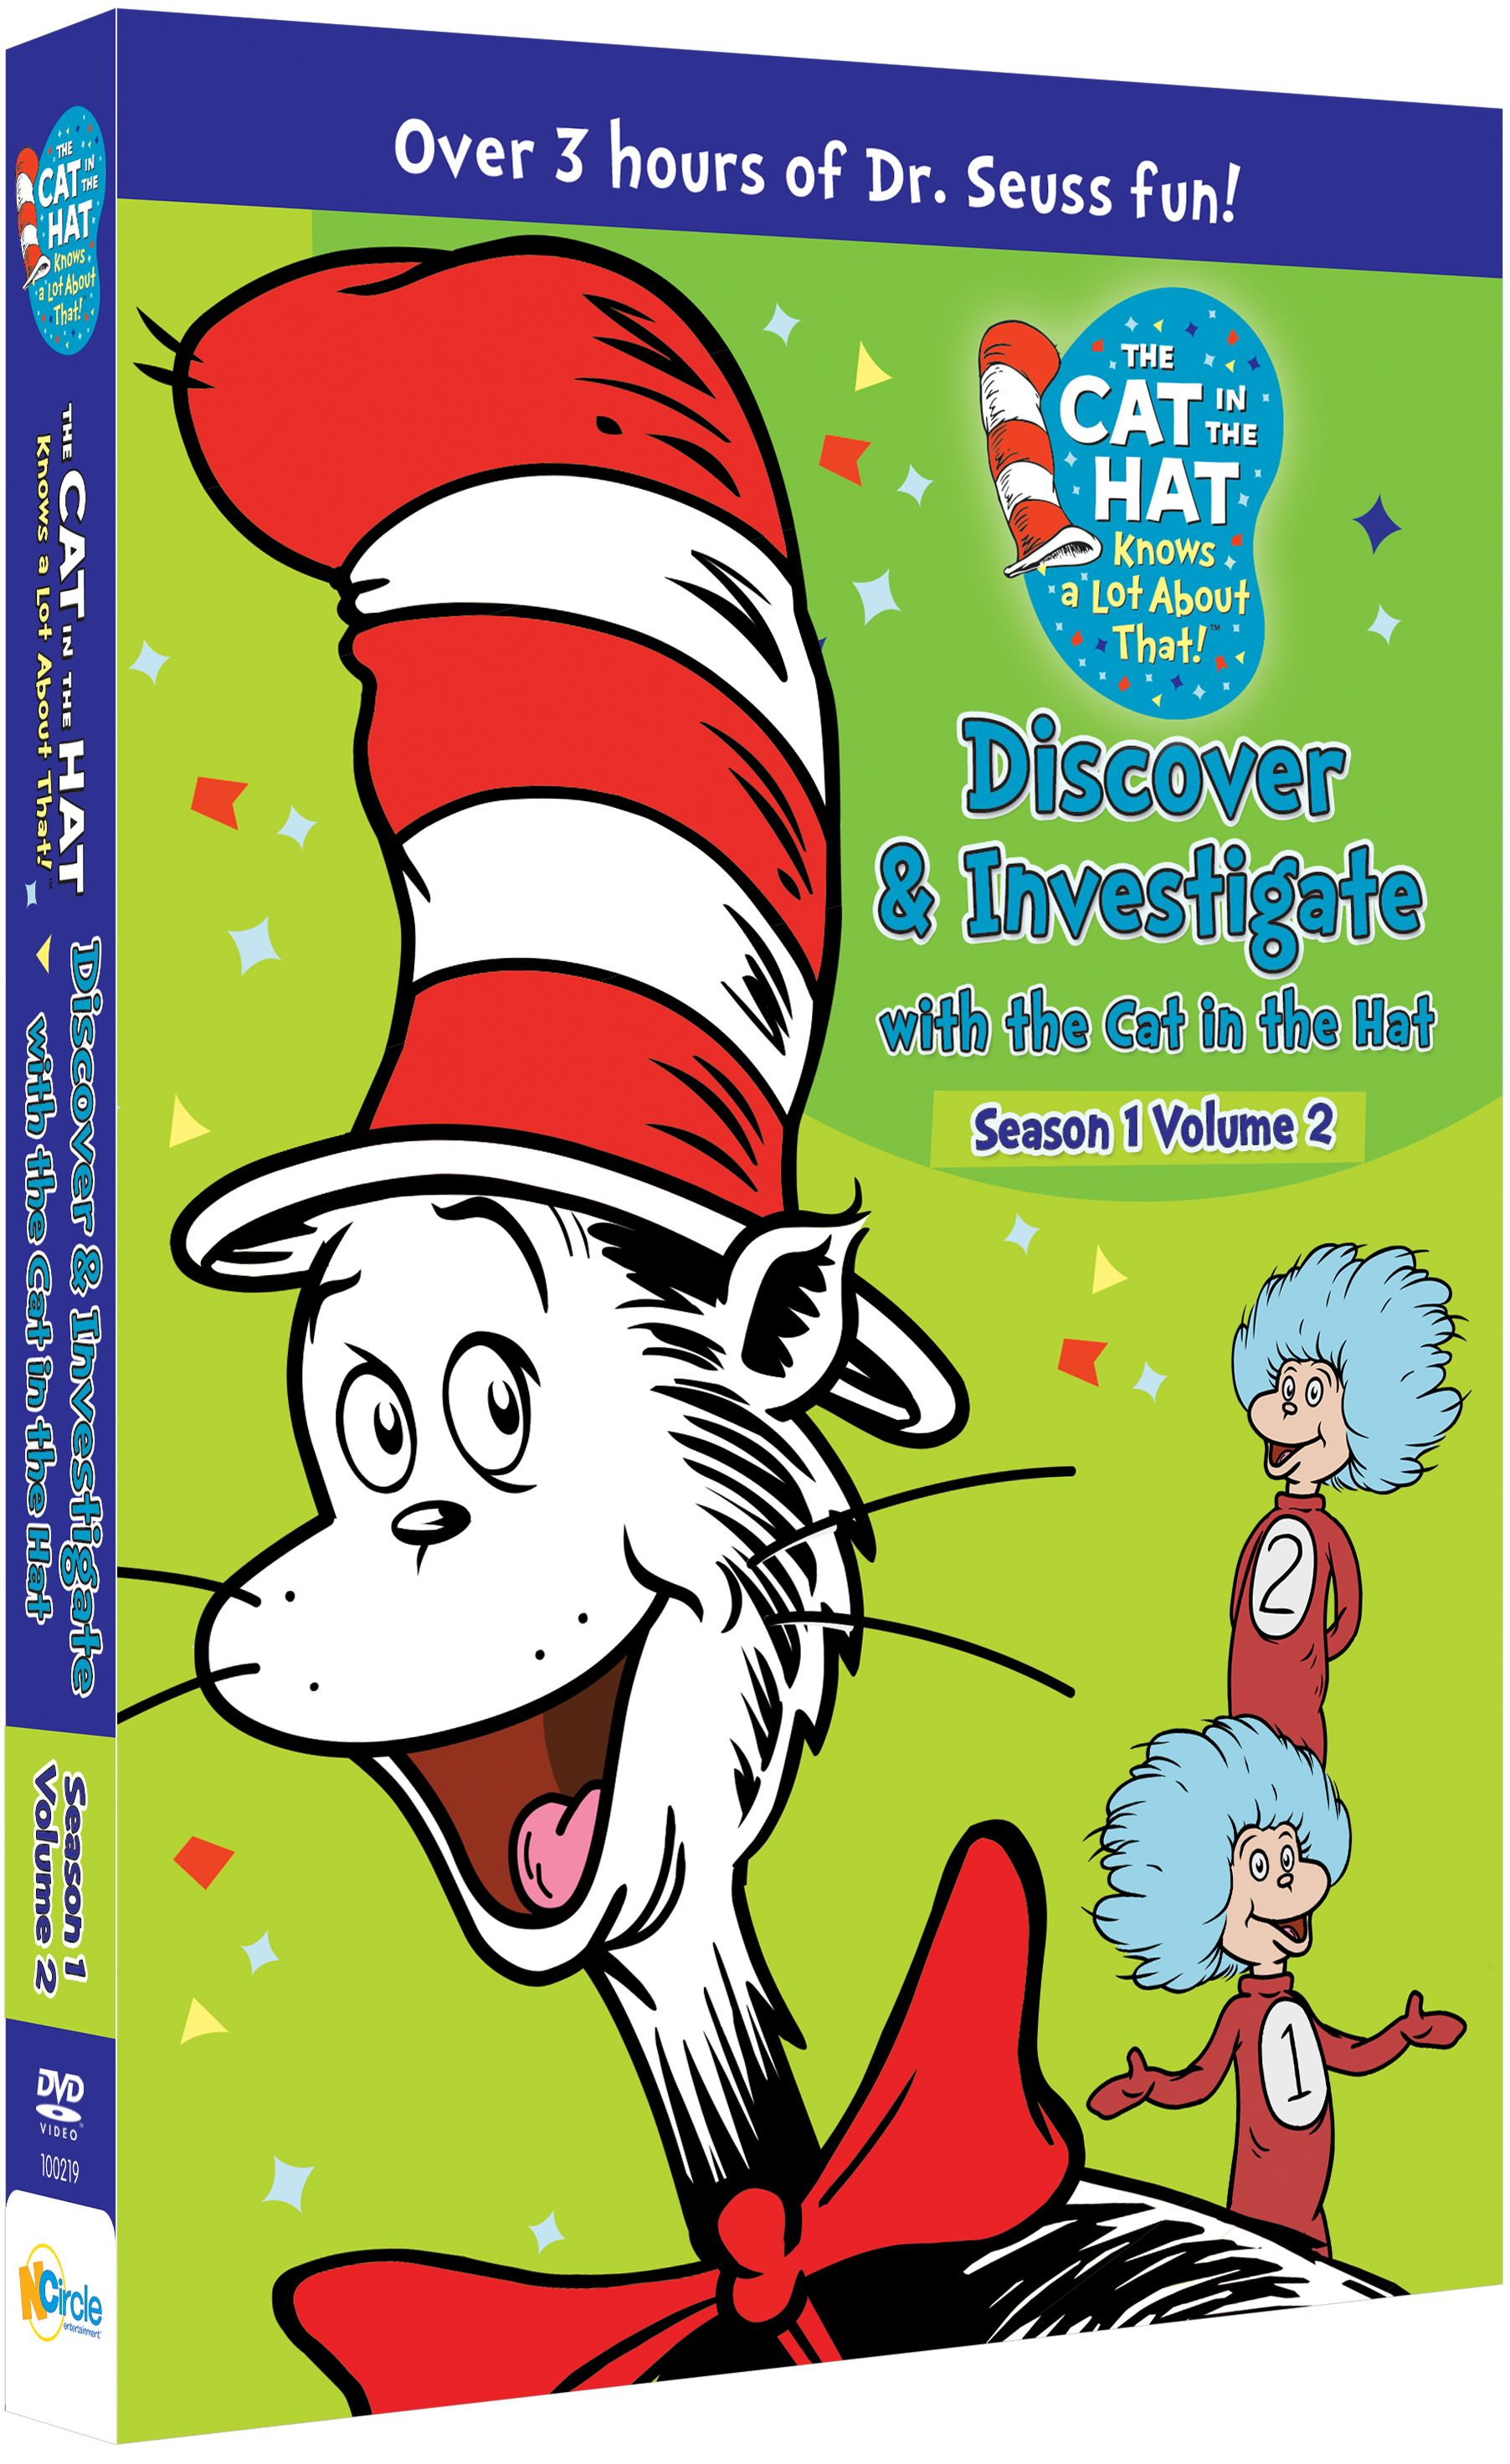 Pin by NCircle Entertainment on The Cat in the Hat Knows a